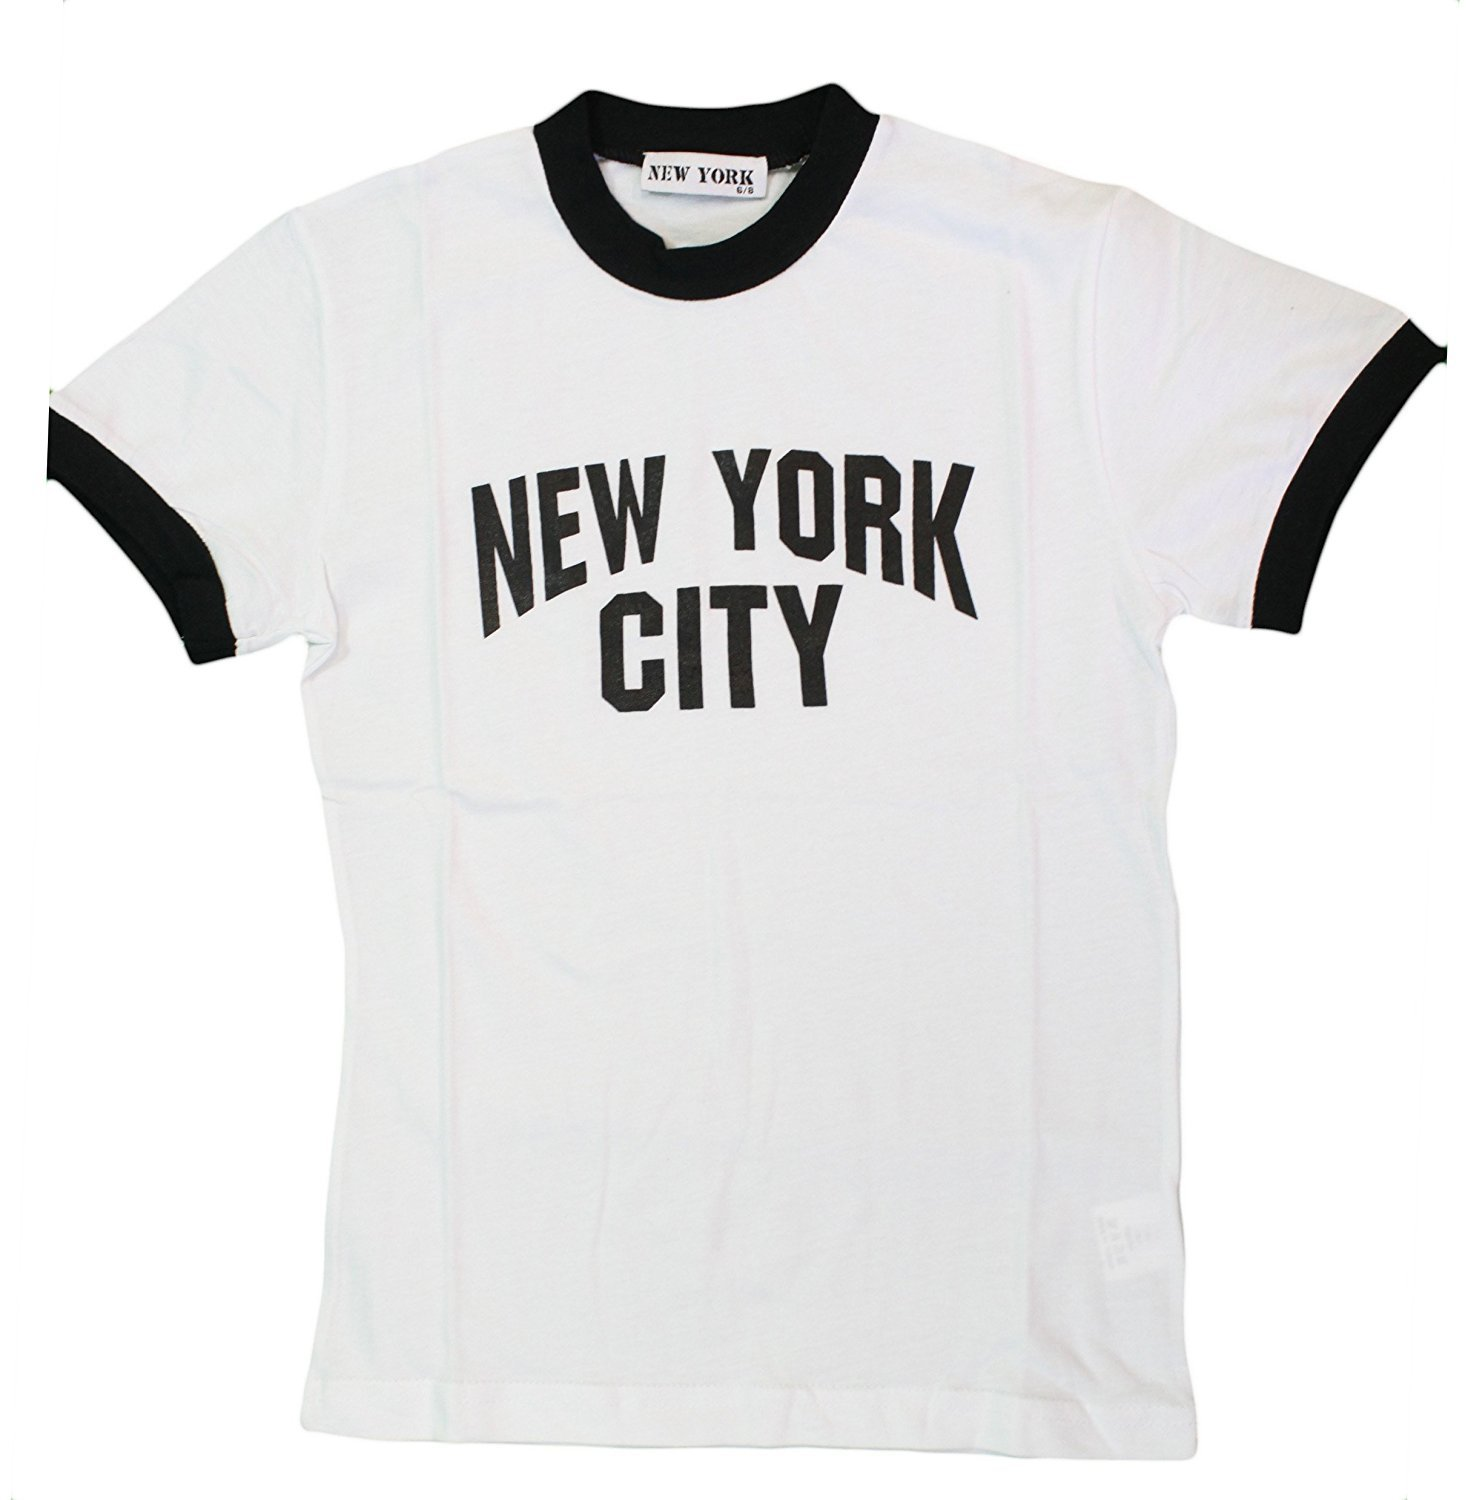 Breaking down new york's tourist tees with the help of souvenir vendors